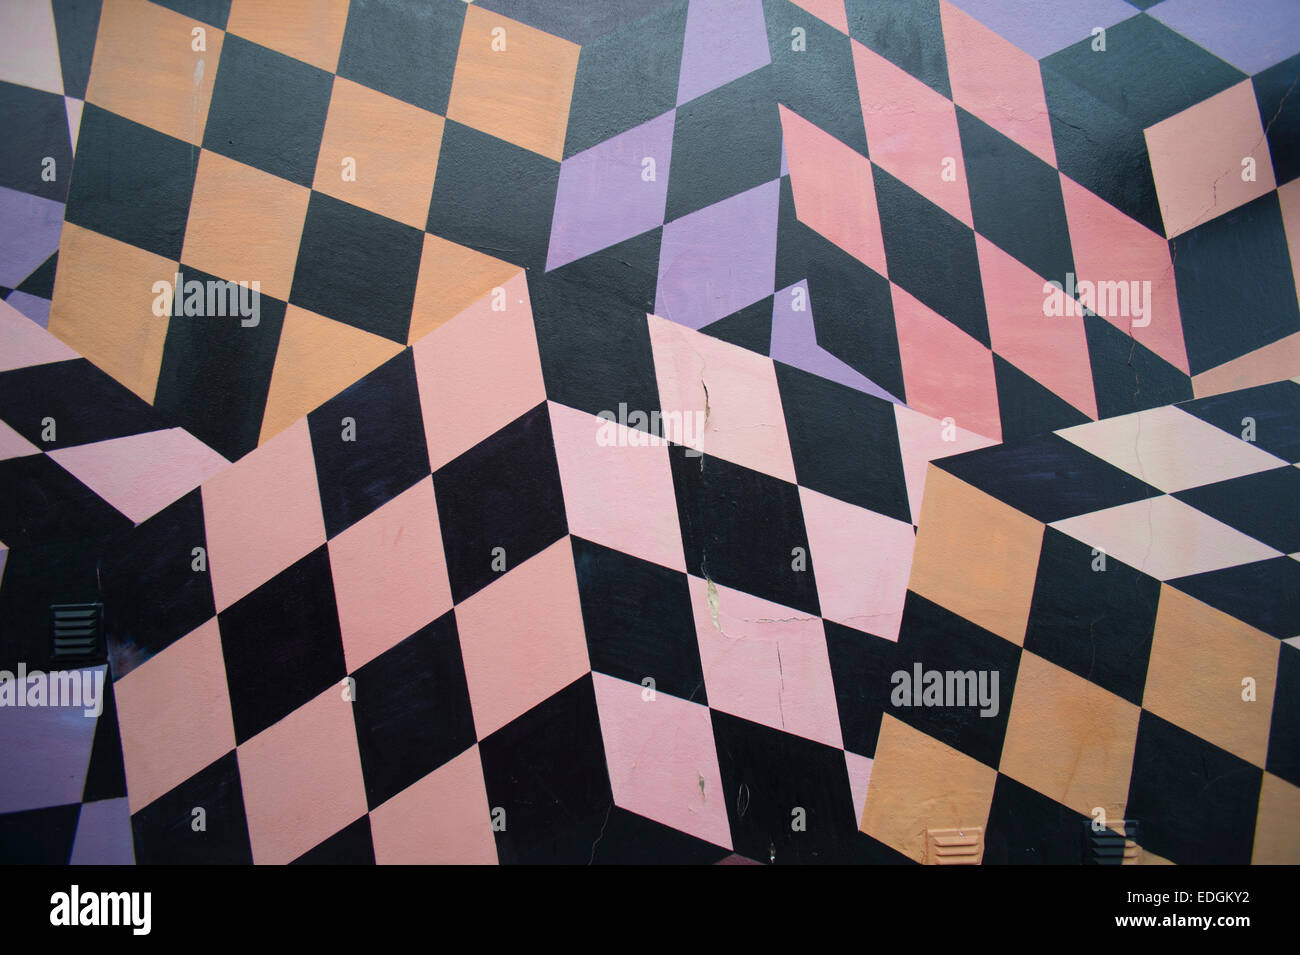 Painted Wall Abstract Geometric Patterns Stock Photo